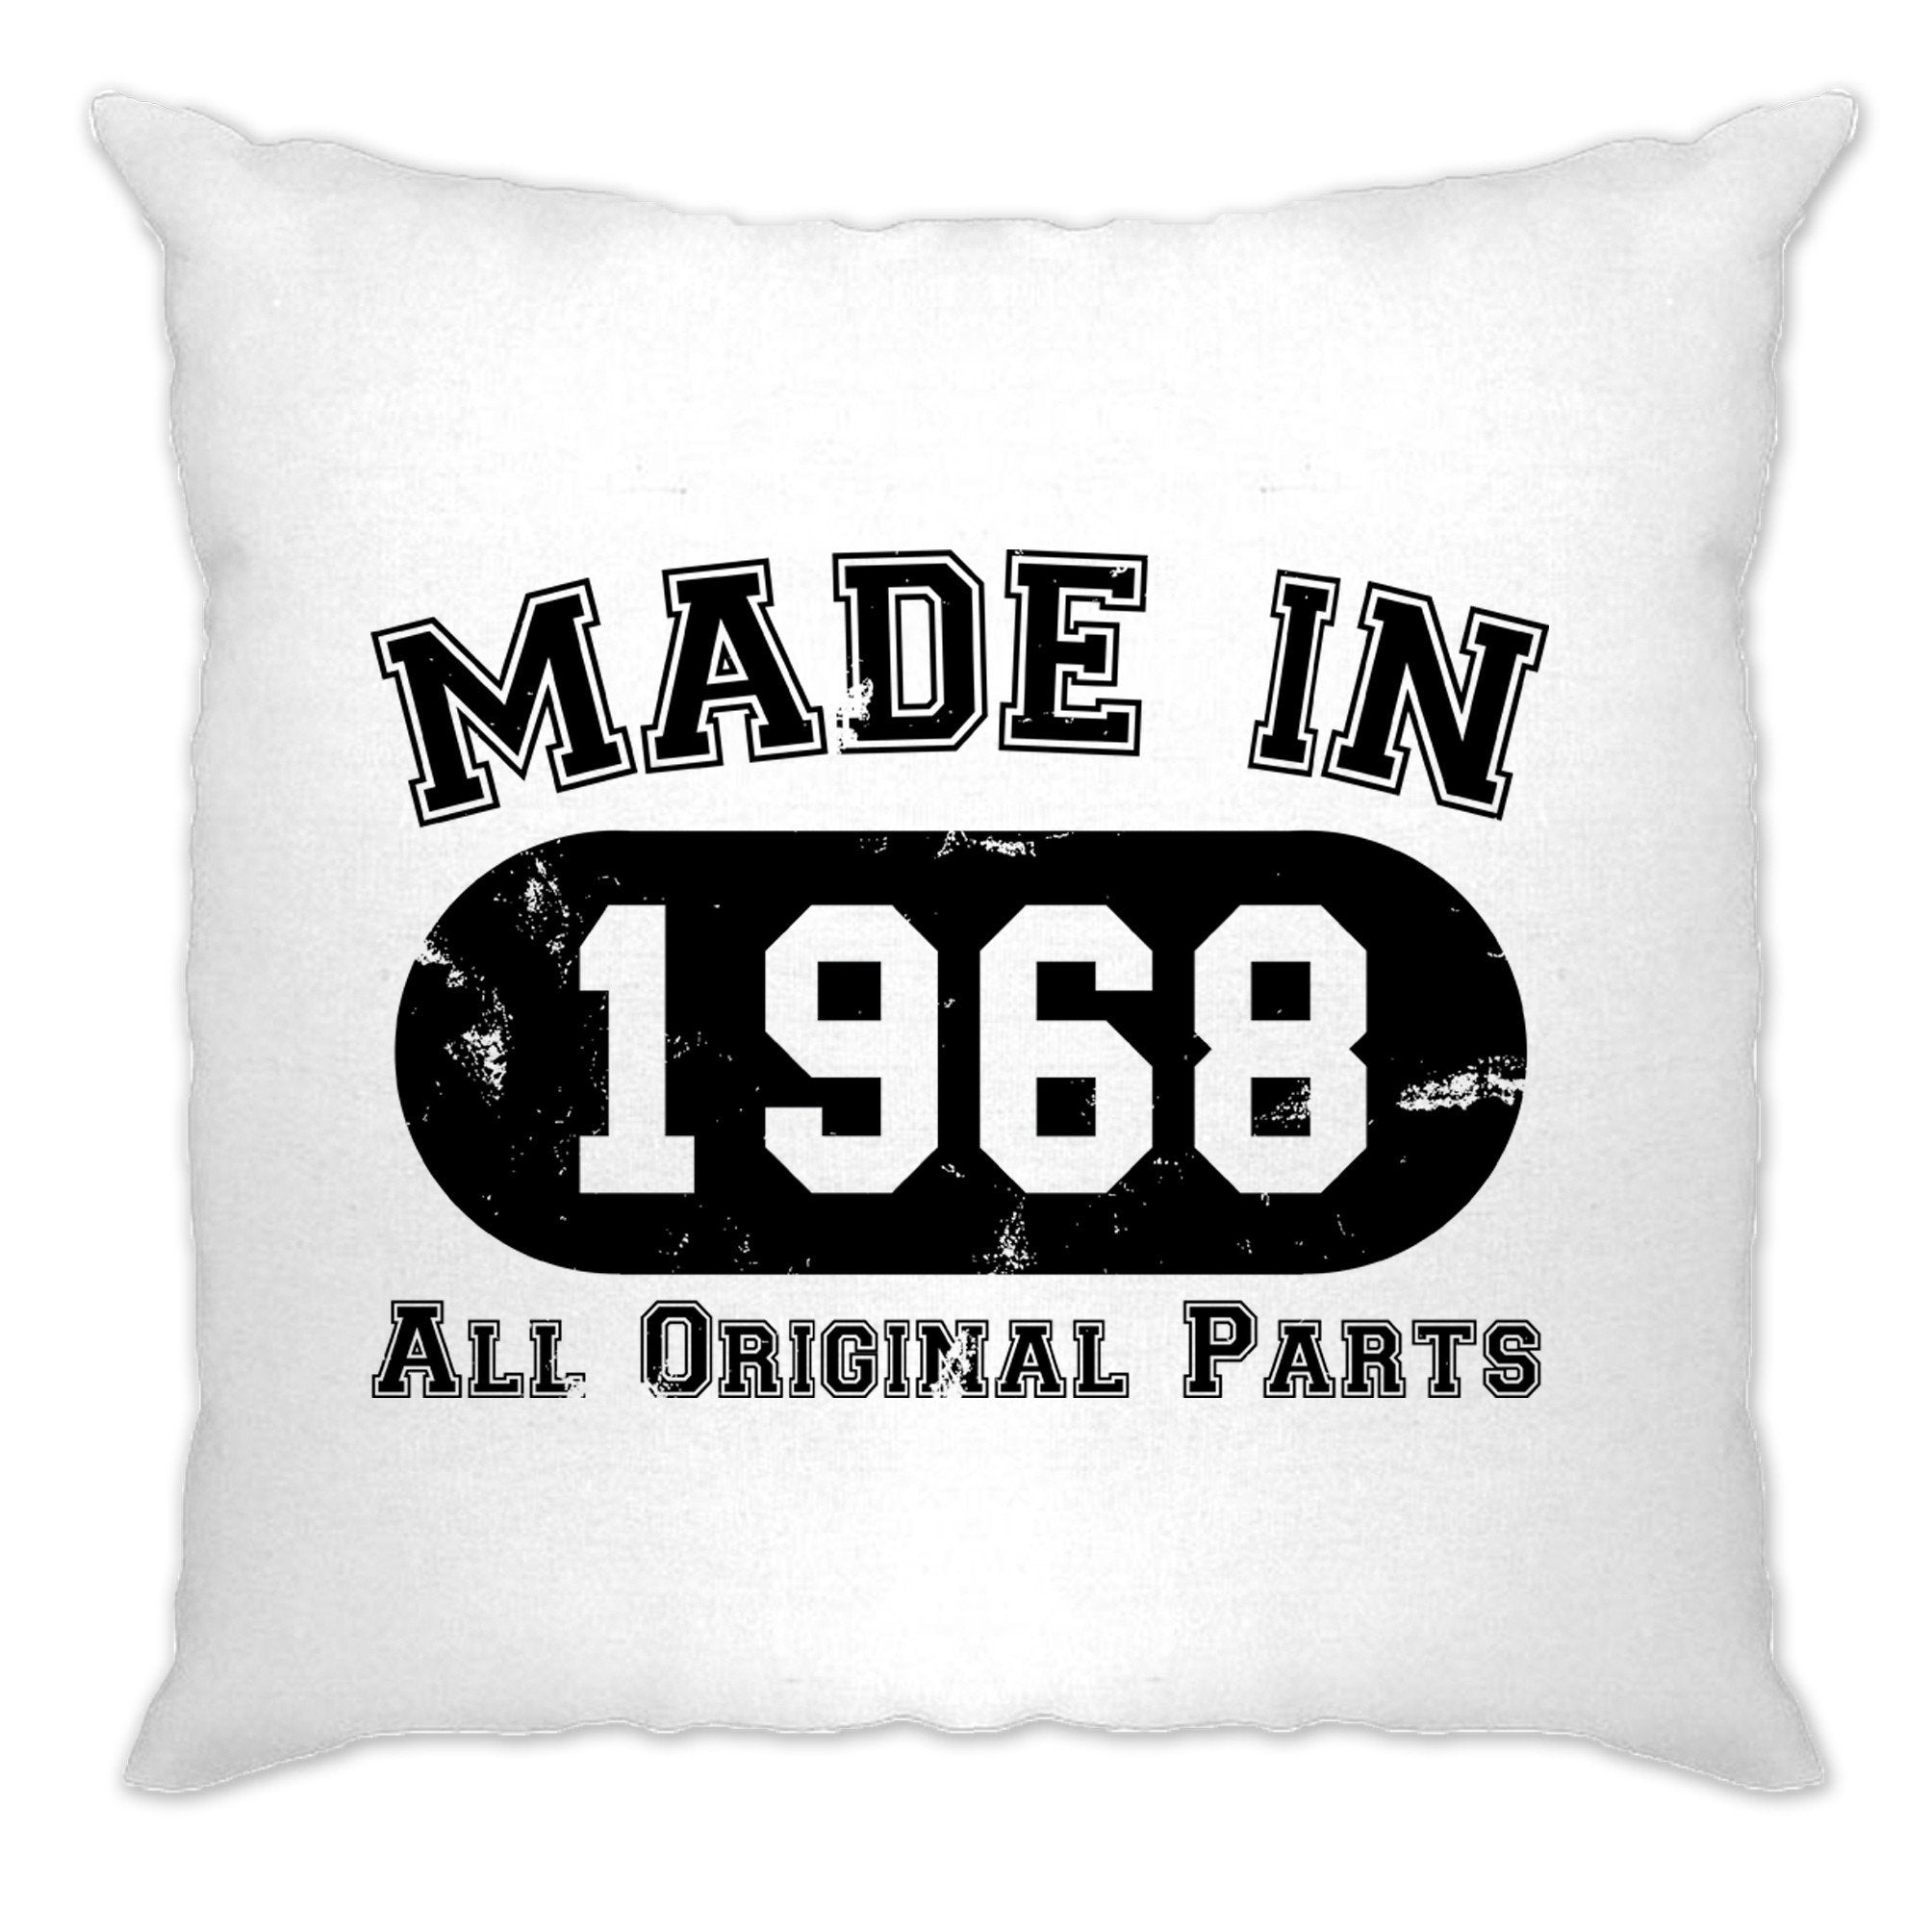 Made in 1968 All Original Parts Cushion Cover [Distressed]